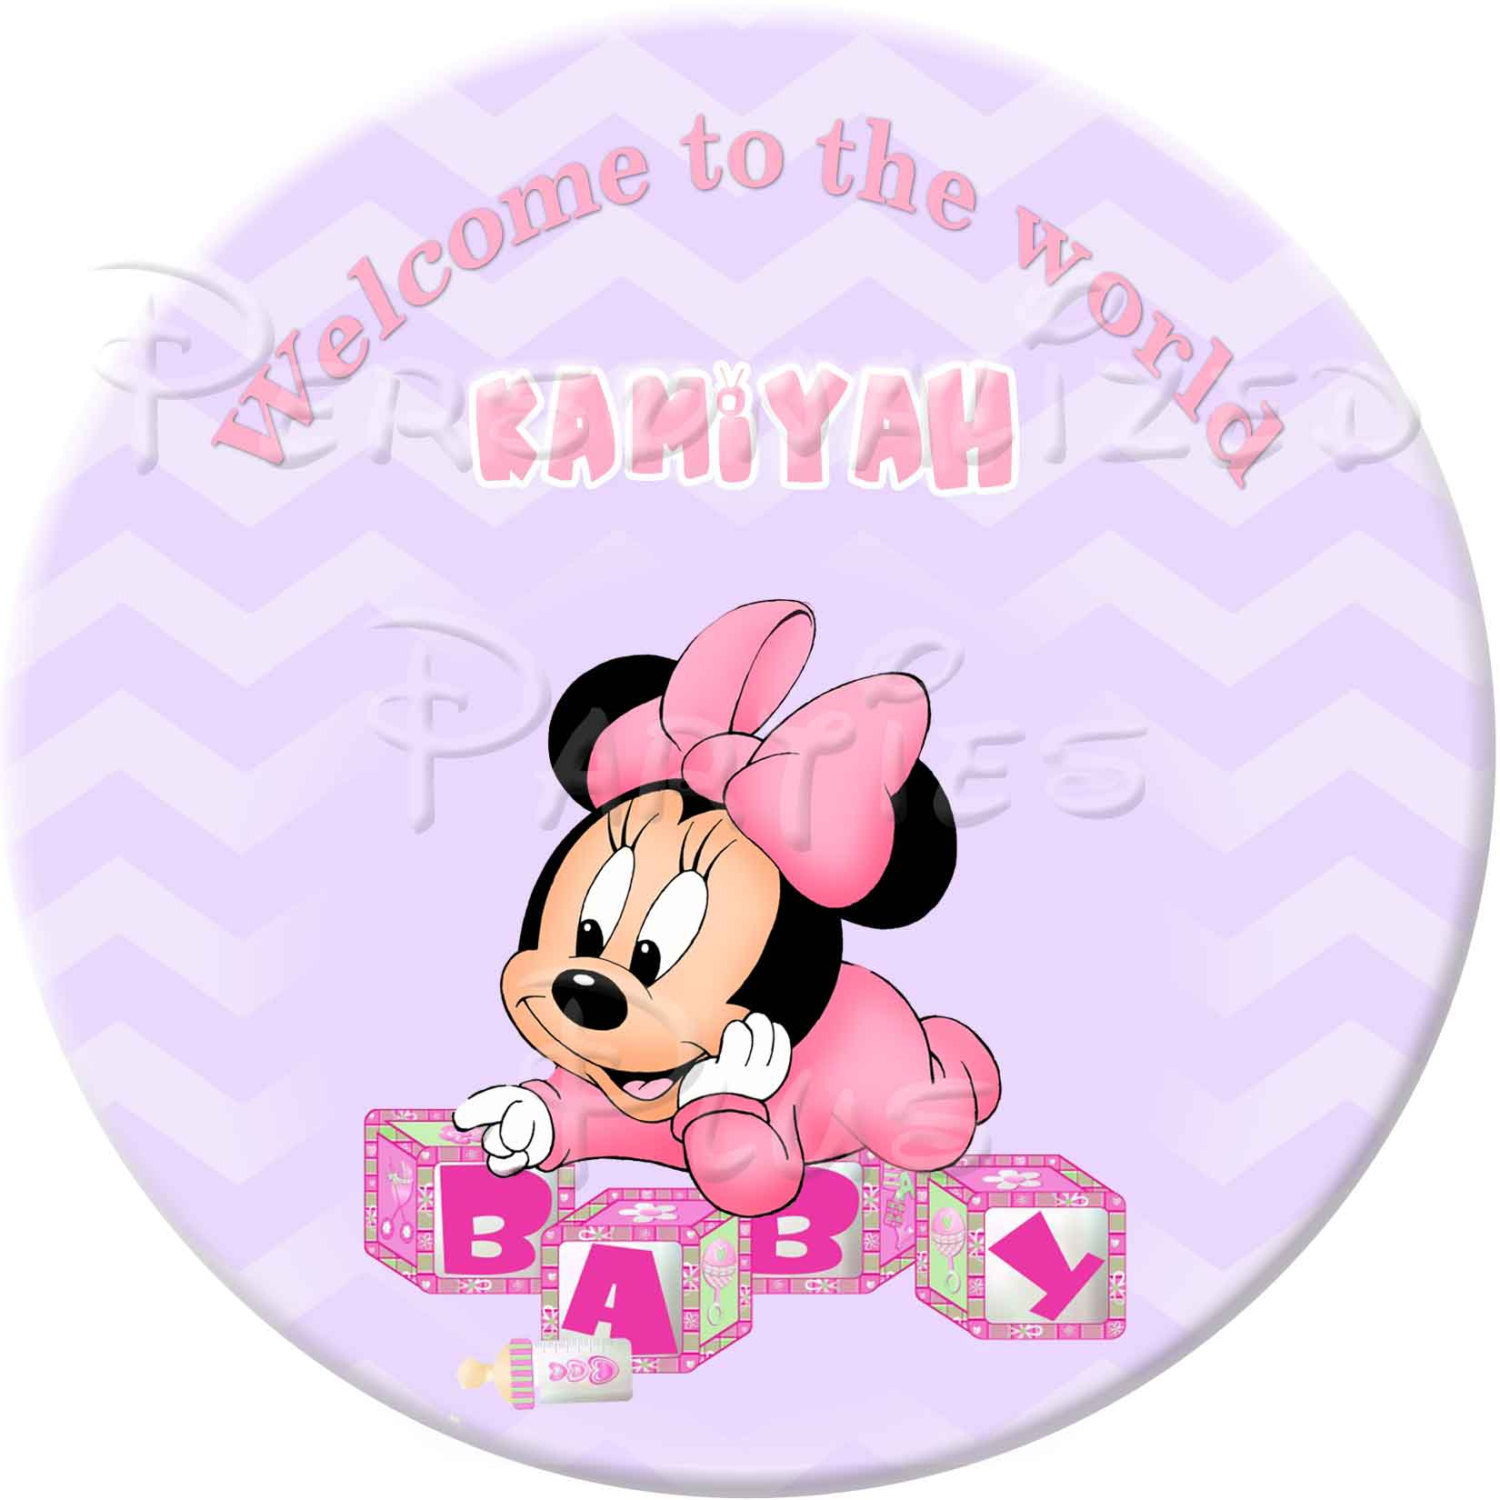 Personalized Minnie Mouse baby shower package: banner, cupcake toppers, water bo